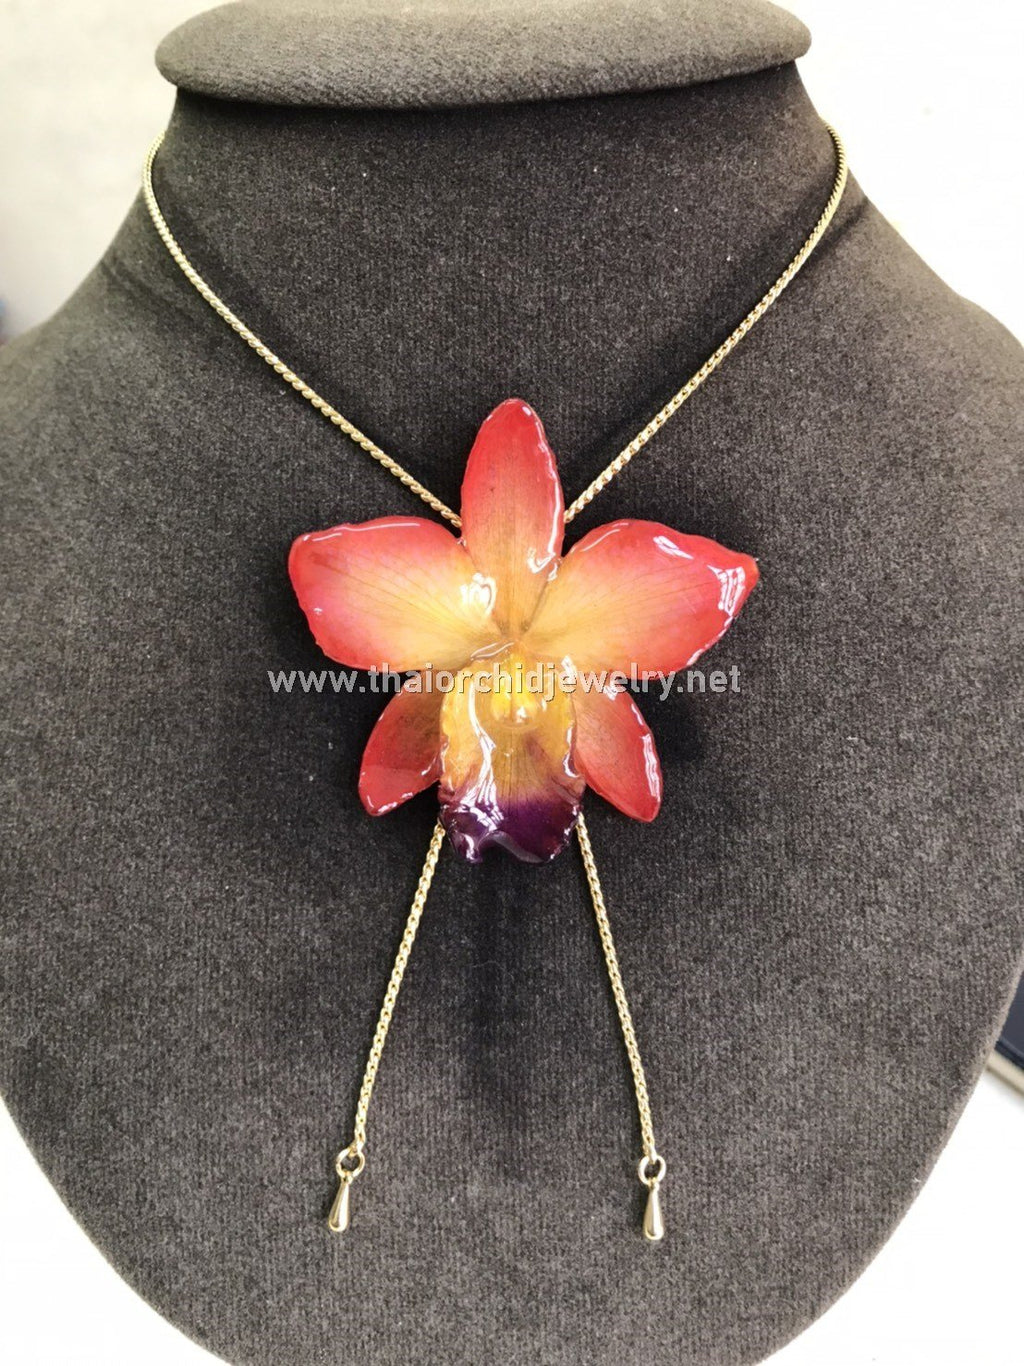 Cattleya Orchid Jewelry Slider Necklace Gold Plated 24K - Orange Yellow Sun Kiss